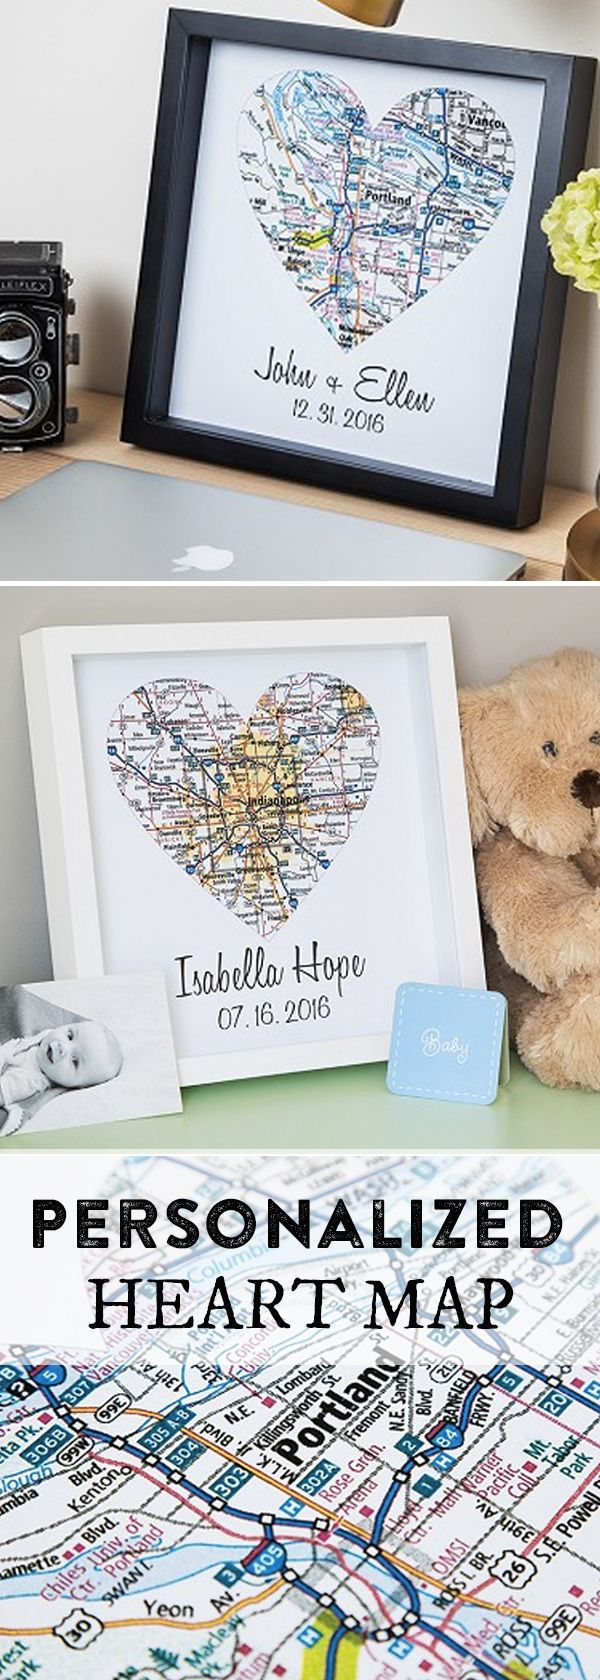 Frame the place that's near and dear to their heart. This custom map art includes a heart shaped cutout, a date, and the name(s) you choose. The entire design is given dimension inside a shadow box frame, Celebrate a wedding, graduation, anniversary, or special occasion by showing your allegiance to a special time and place.